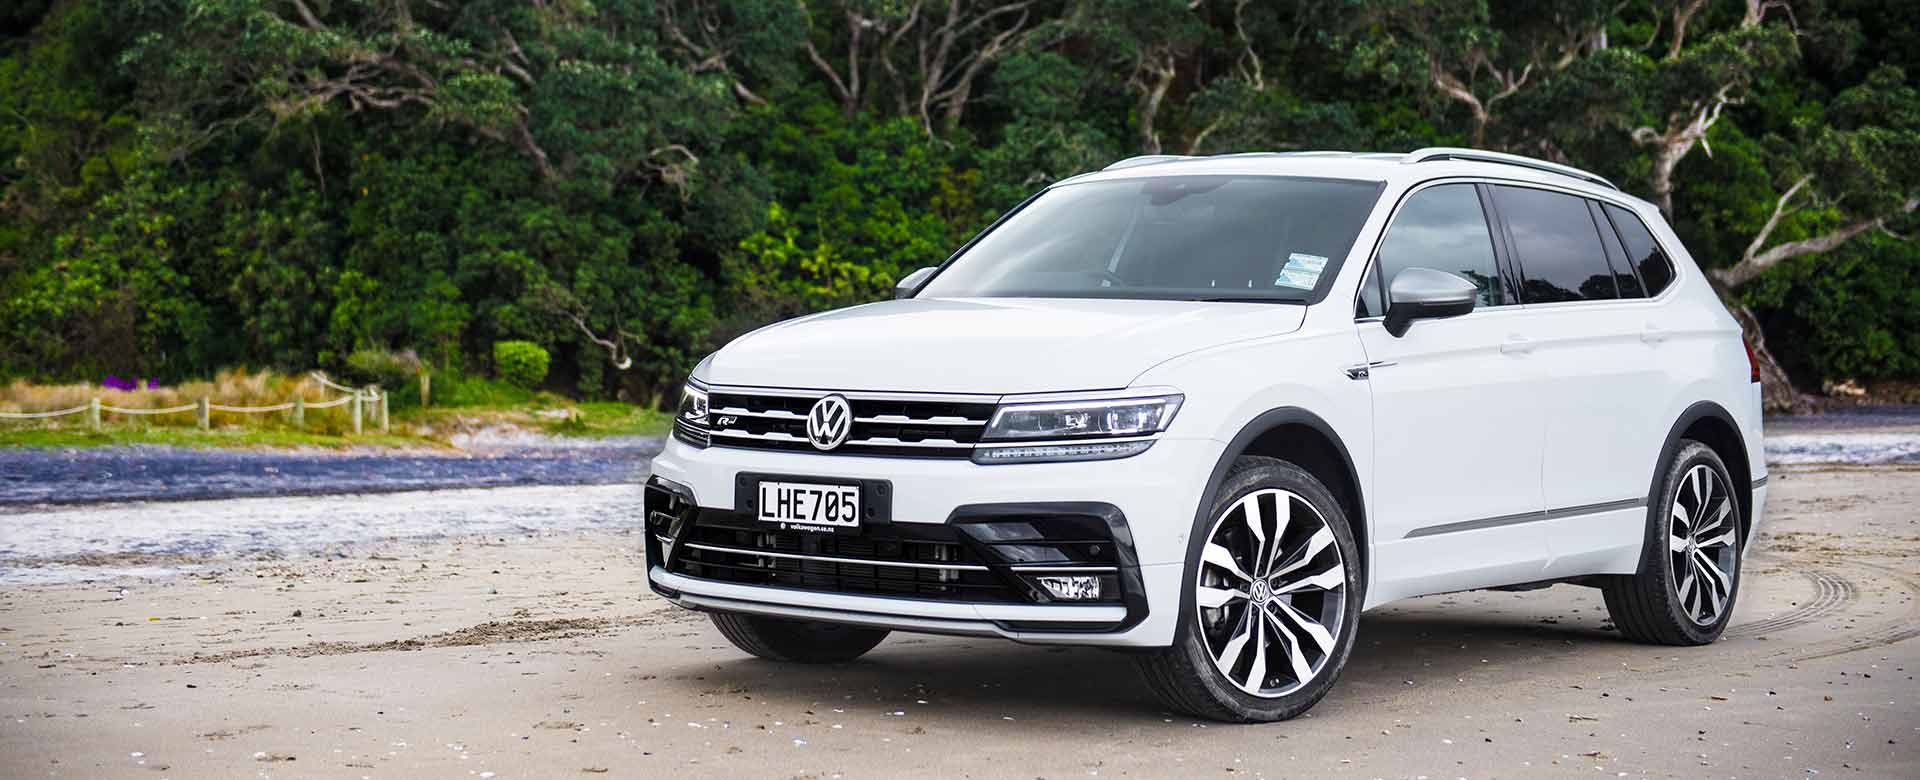 Volkswagen Tiguan Allspace R-Line SUV in white on a beach